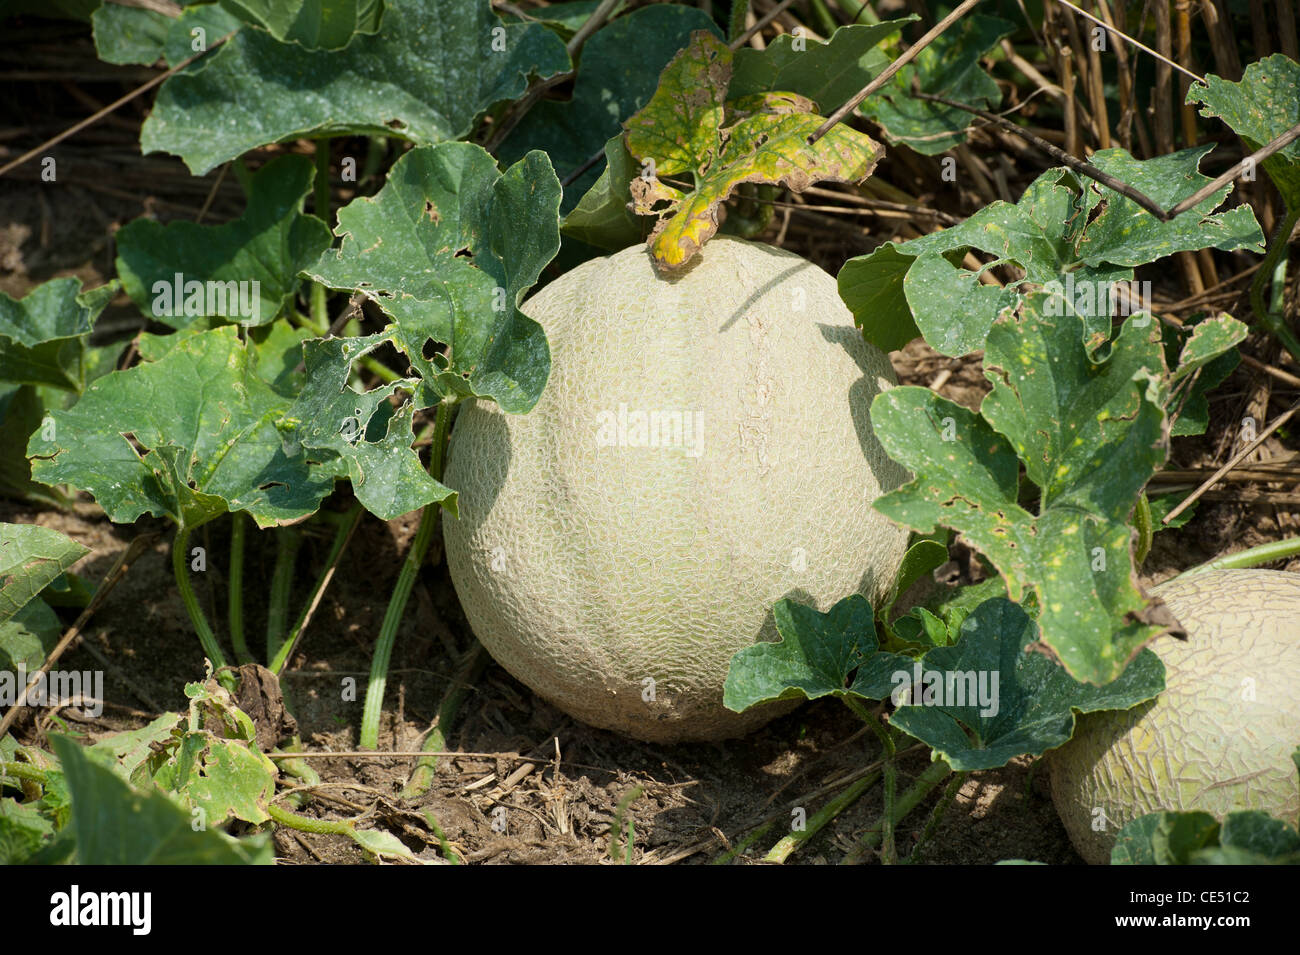 Cantaloupe Vine High Resolution Stock Photography And Images Alamy Melons can be tricky to guage when it's time to pick them. https www alamy com stock photo cantaloupe on the vine in a field on produce farm 43136802 html